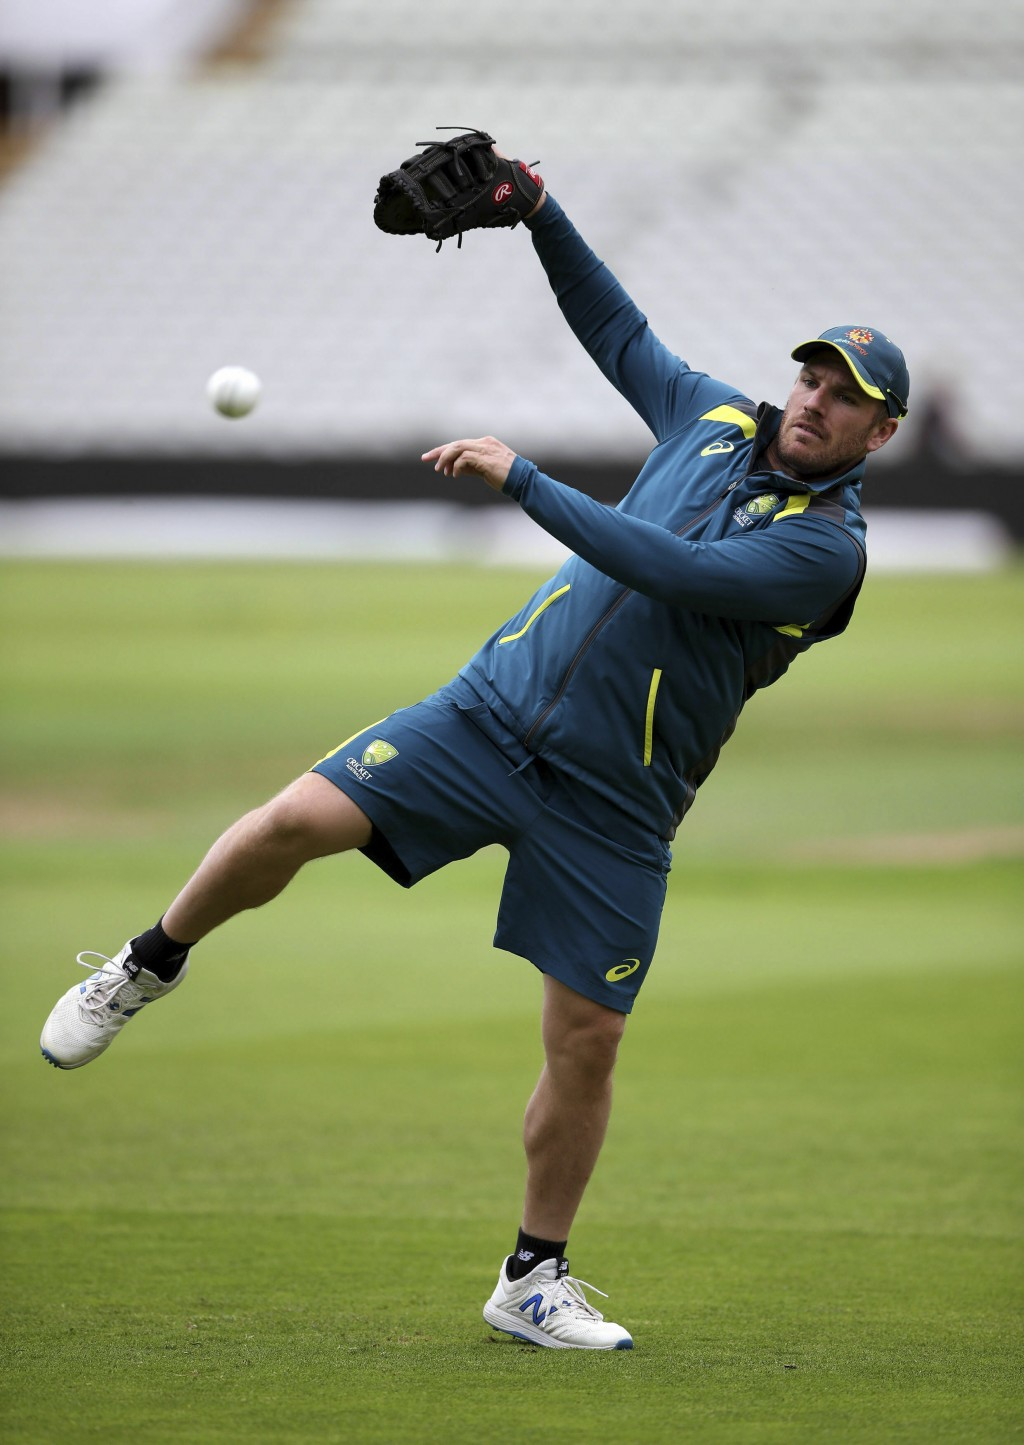 Australia's Aaron Finch fields during the nets session at Edgbaston, Birmingham, England, Wednesday July 10, 2019 one day ahead of their Cricket World